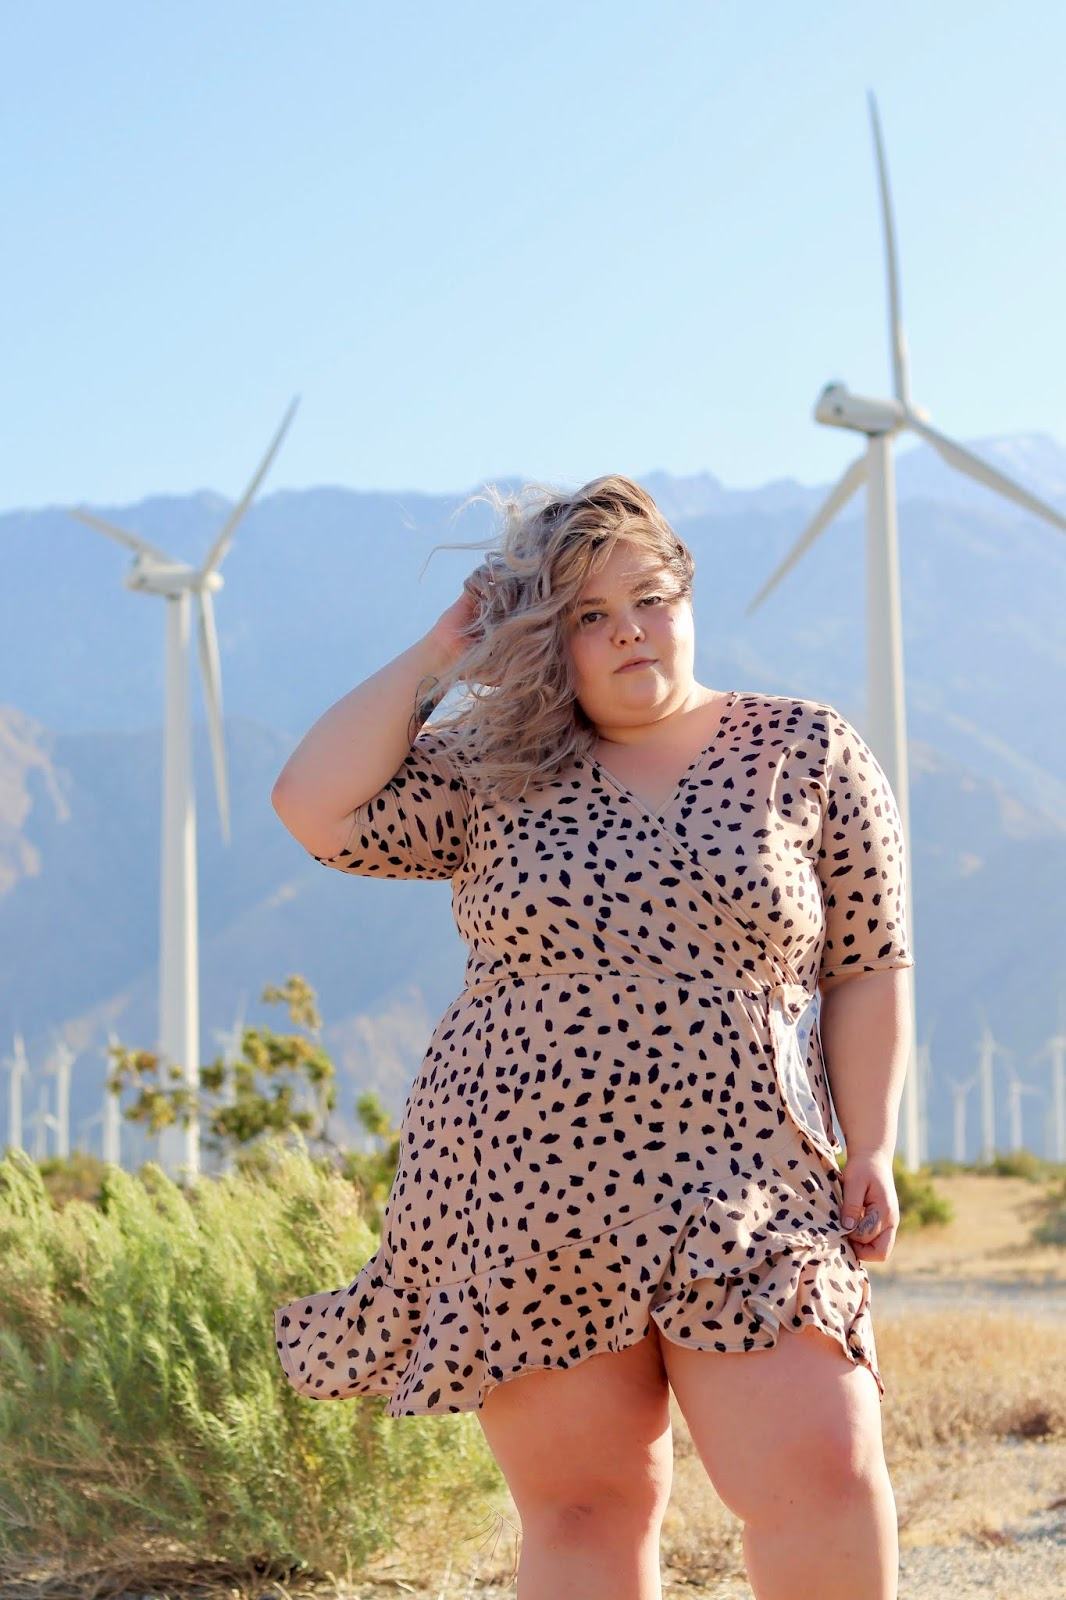 Chicago Plus Size Petite Fashion Blogger, YouTuber, and model Natalie Craig, of Natalie in the City, reviews Pink Clove's mini wrap dress and attends Her Conference in Los Angeles. palm springs windmills, best places to take photos in palm springs